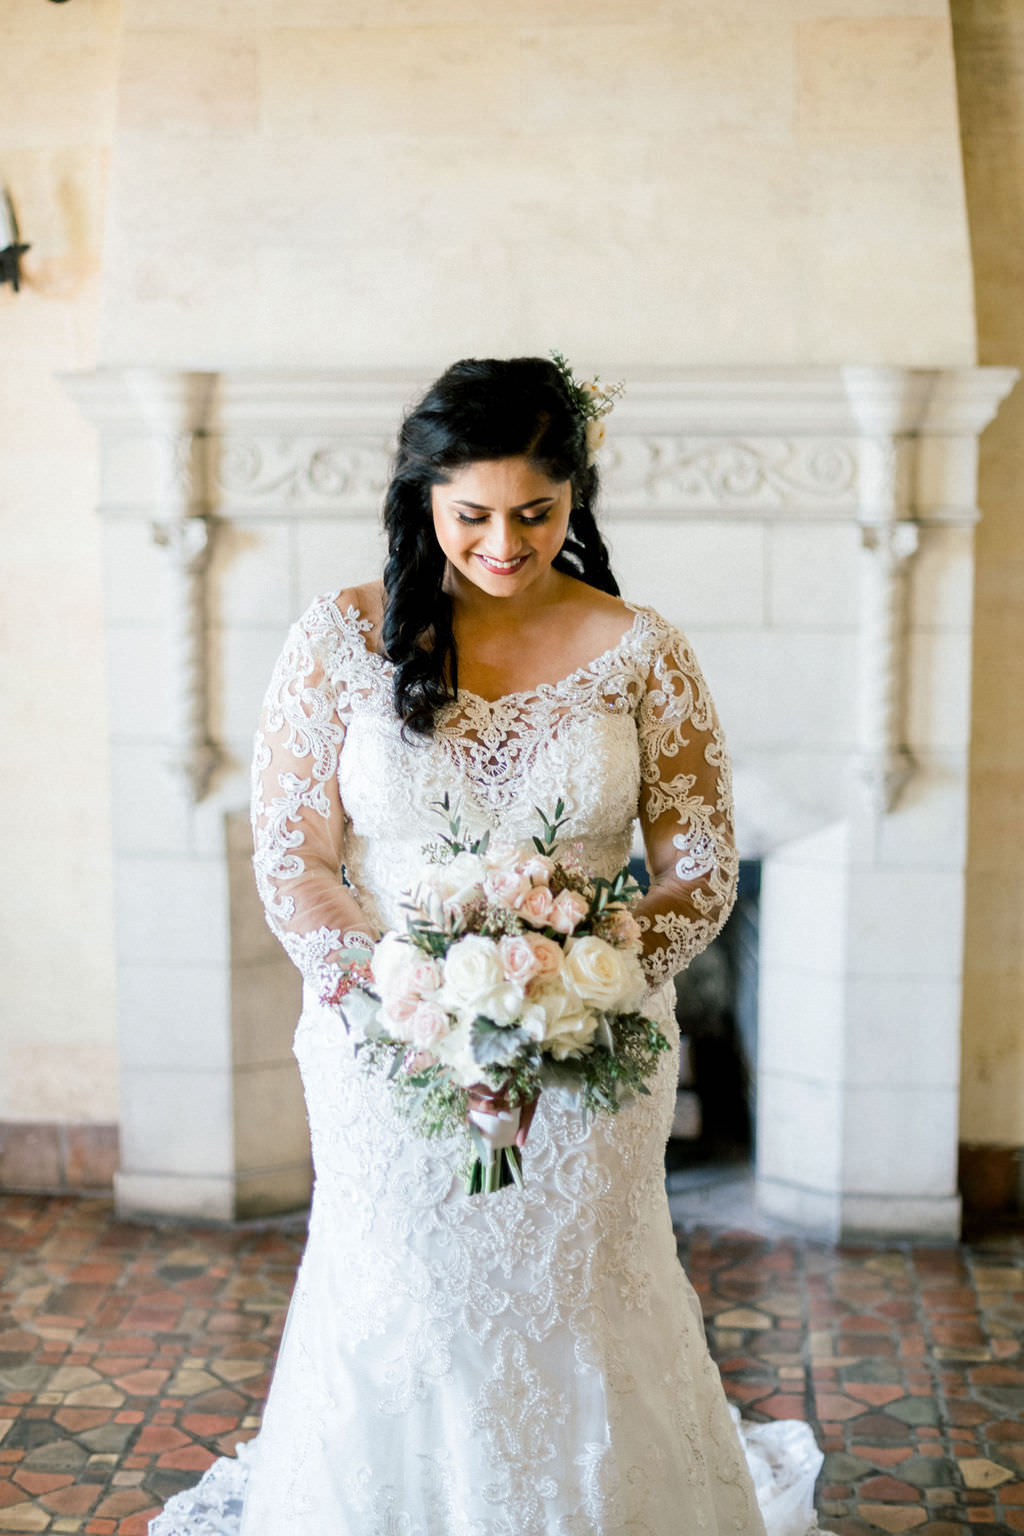 Sarasota Bride in Elegant White Lace Mermaid Style Wedding Dress with Illusion Sleeves and Bateau Neckline, Ivory, Blush Pink Floral Bouquet, with Greenery, Powel Crosley Estate